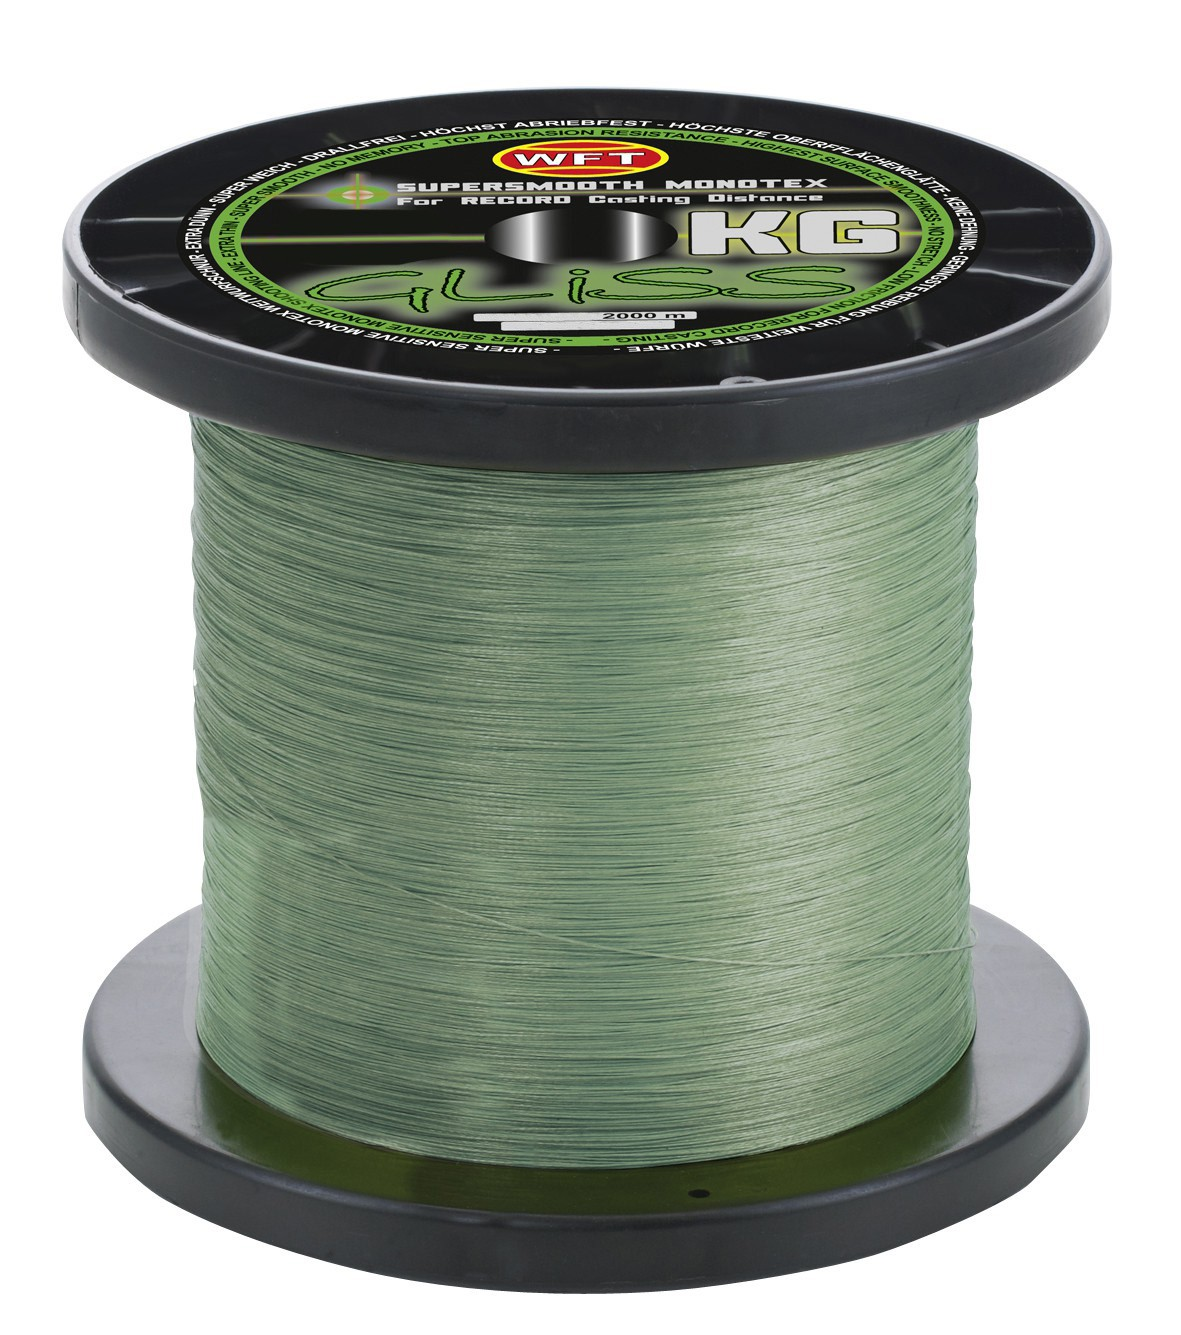 Wft gliss kg monotex line 2000m gr n for Gliss fishing line